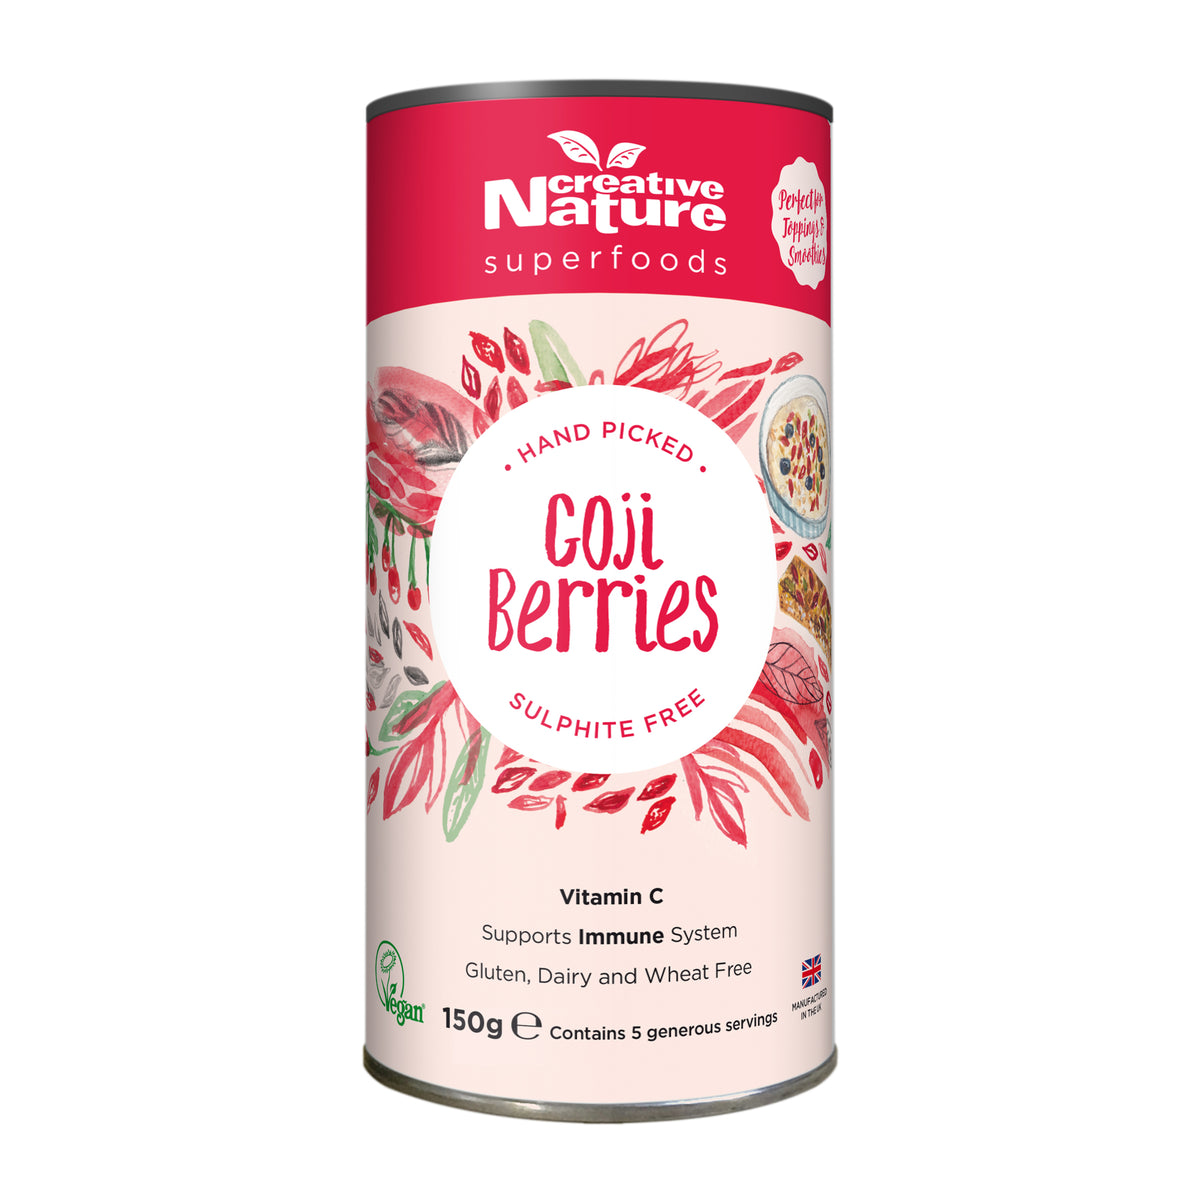 Creative Nature Ningxia Goji Berries (300g)